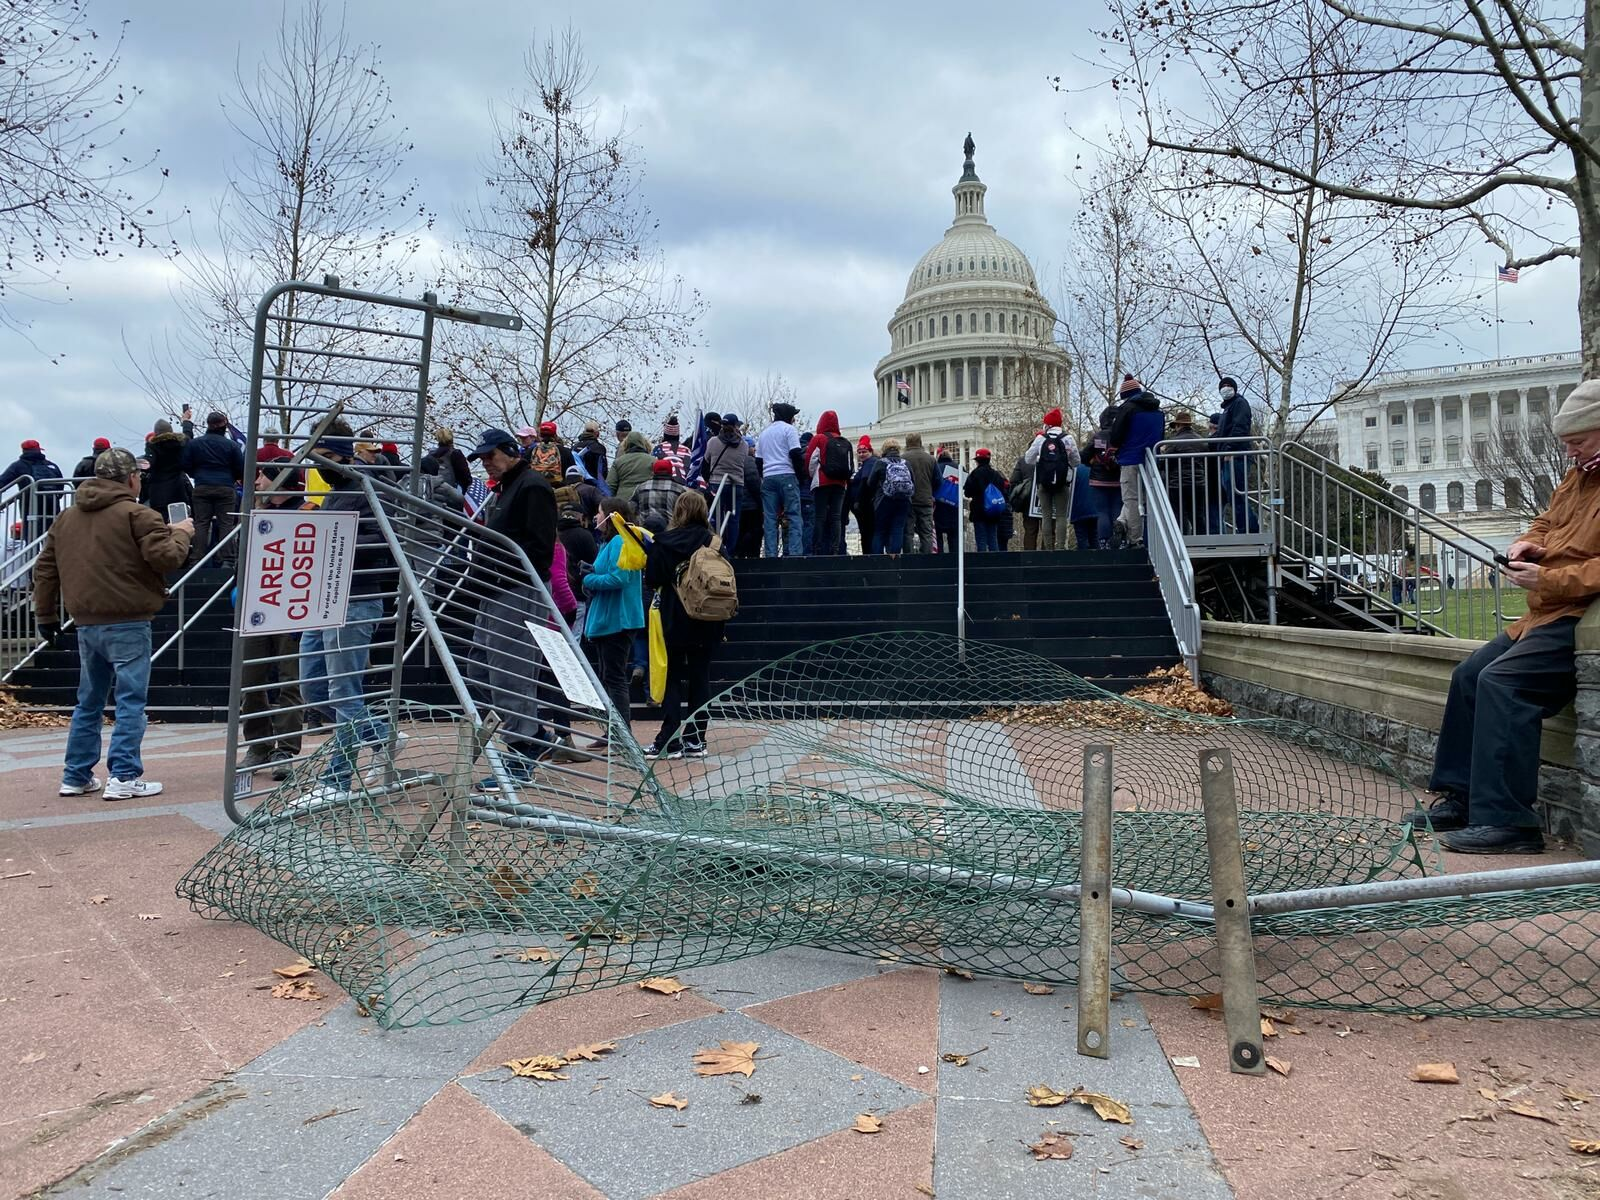 Chaos at Capitol as Pro-Trump protesters clash with police during 2nd day of rallies | WTOP